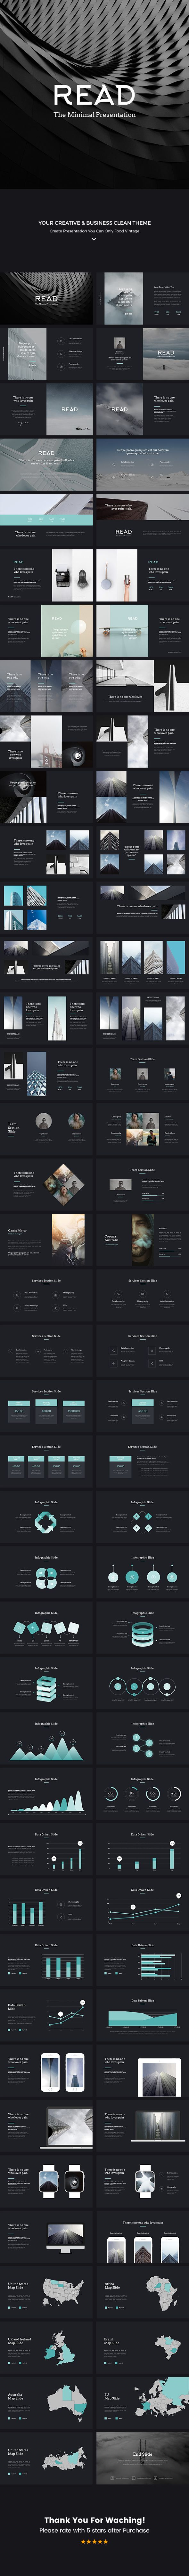 READ Minimal Powerpoint Template #powerpoint #pptx #presentation #portfolio • Download ➝ https://graphicriver.net/item/read-minimal-powerpoint-template/18738767?ref=pxcr